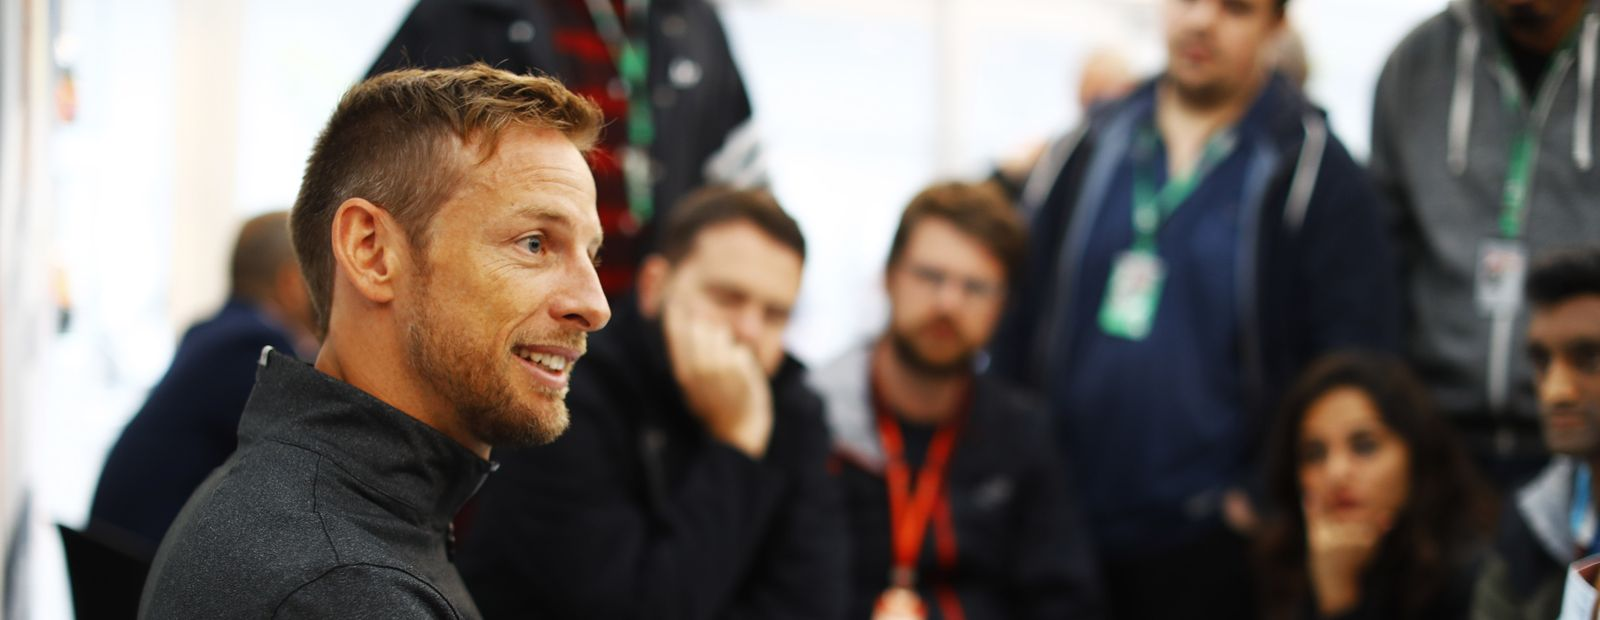 Catching up with Jenson Button